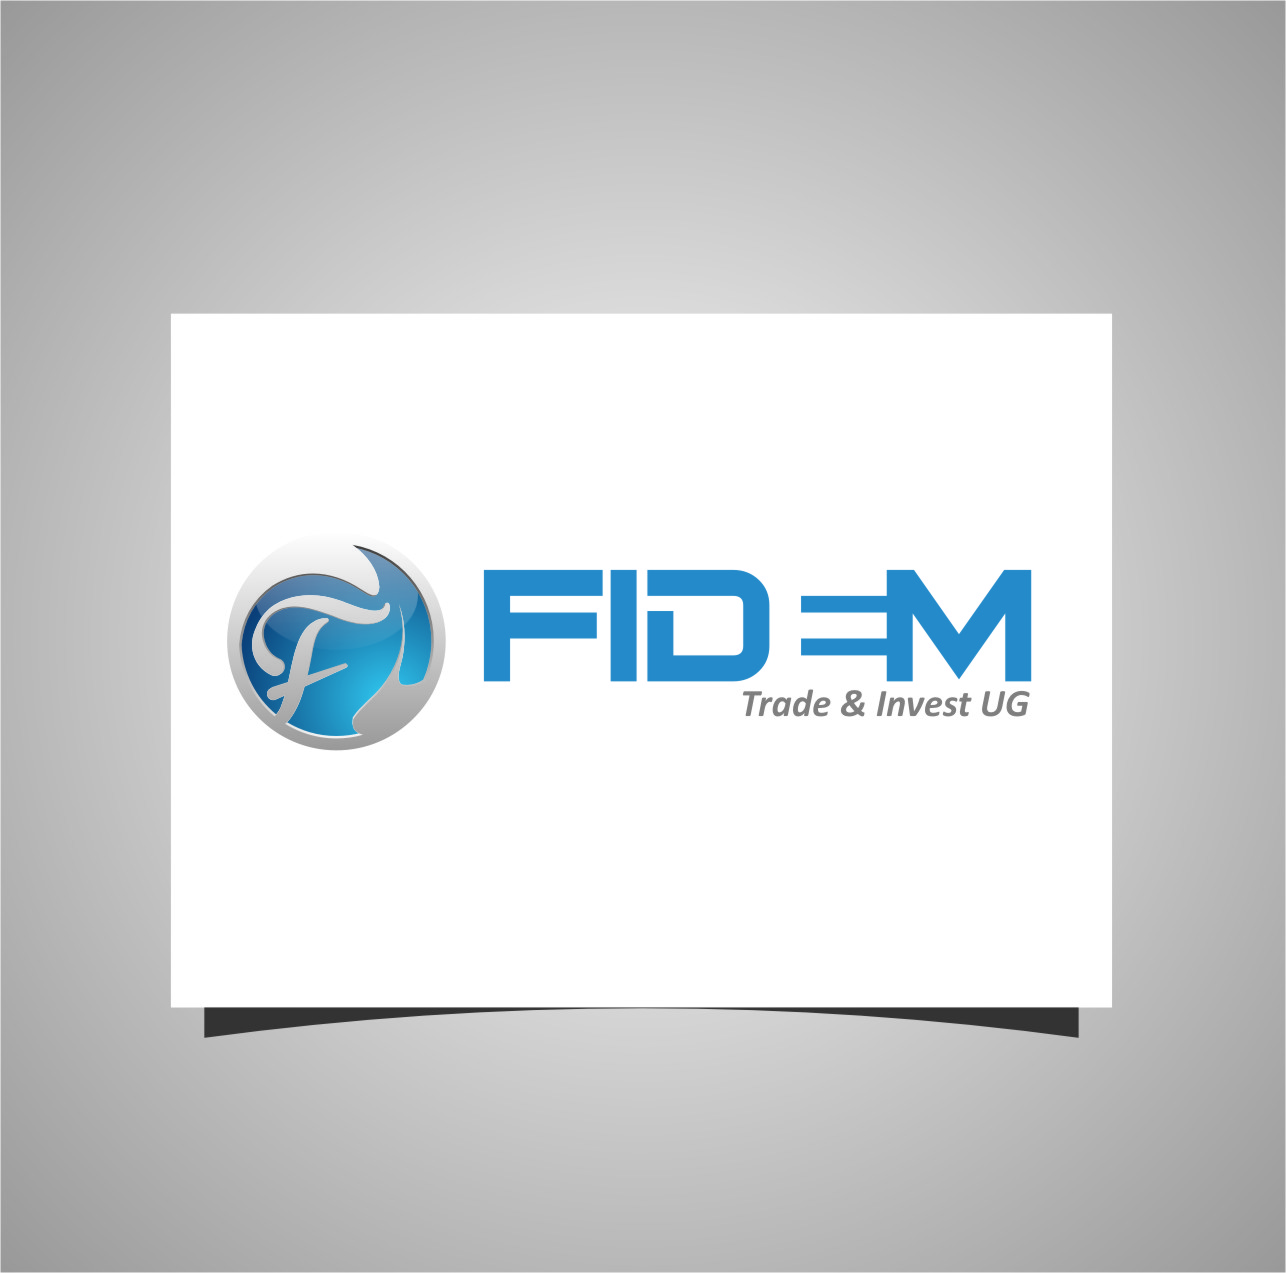 Logo Design by RasYa Muhammad Athaya - Entry No. 500 in the Logo Design Contest Professional Logo Design for FIDEM Trade & Invest UG.